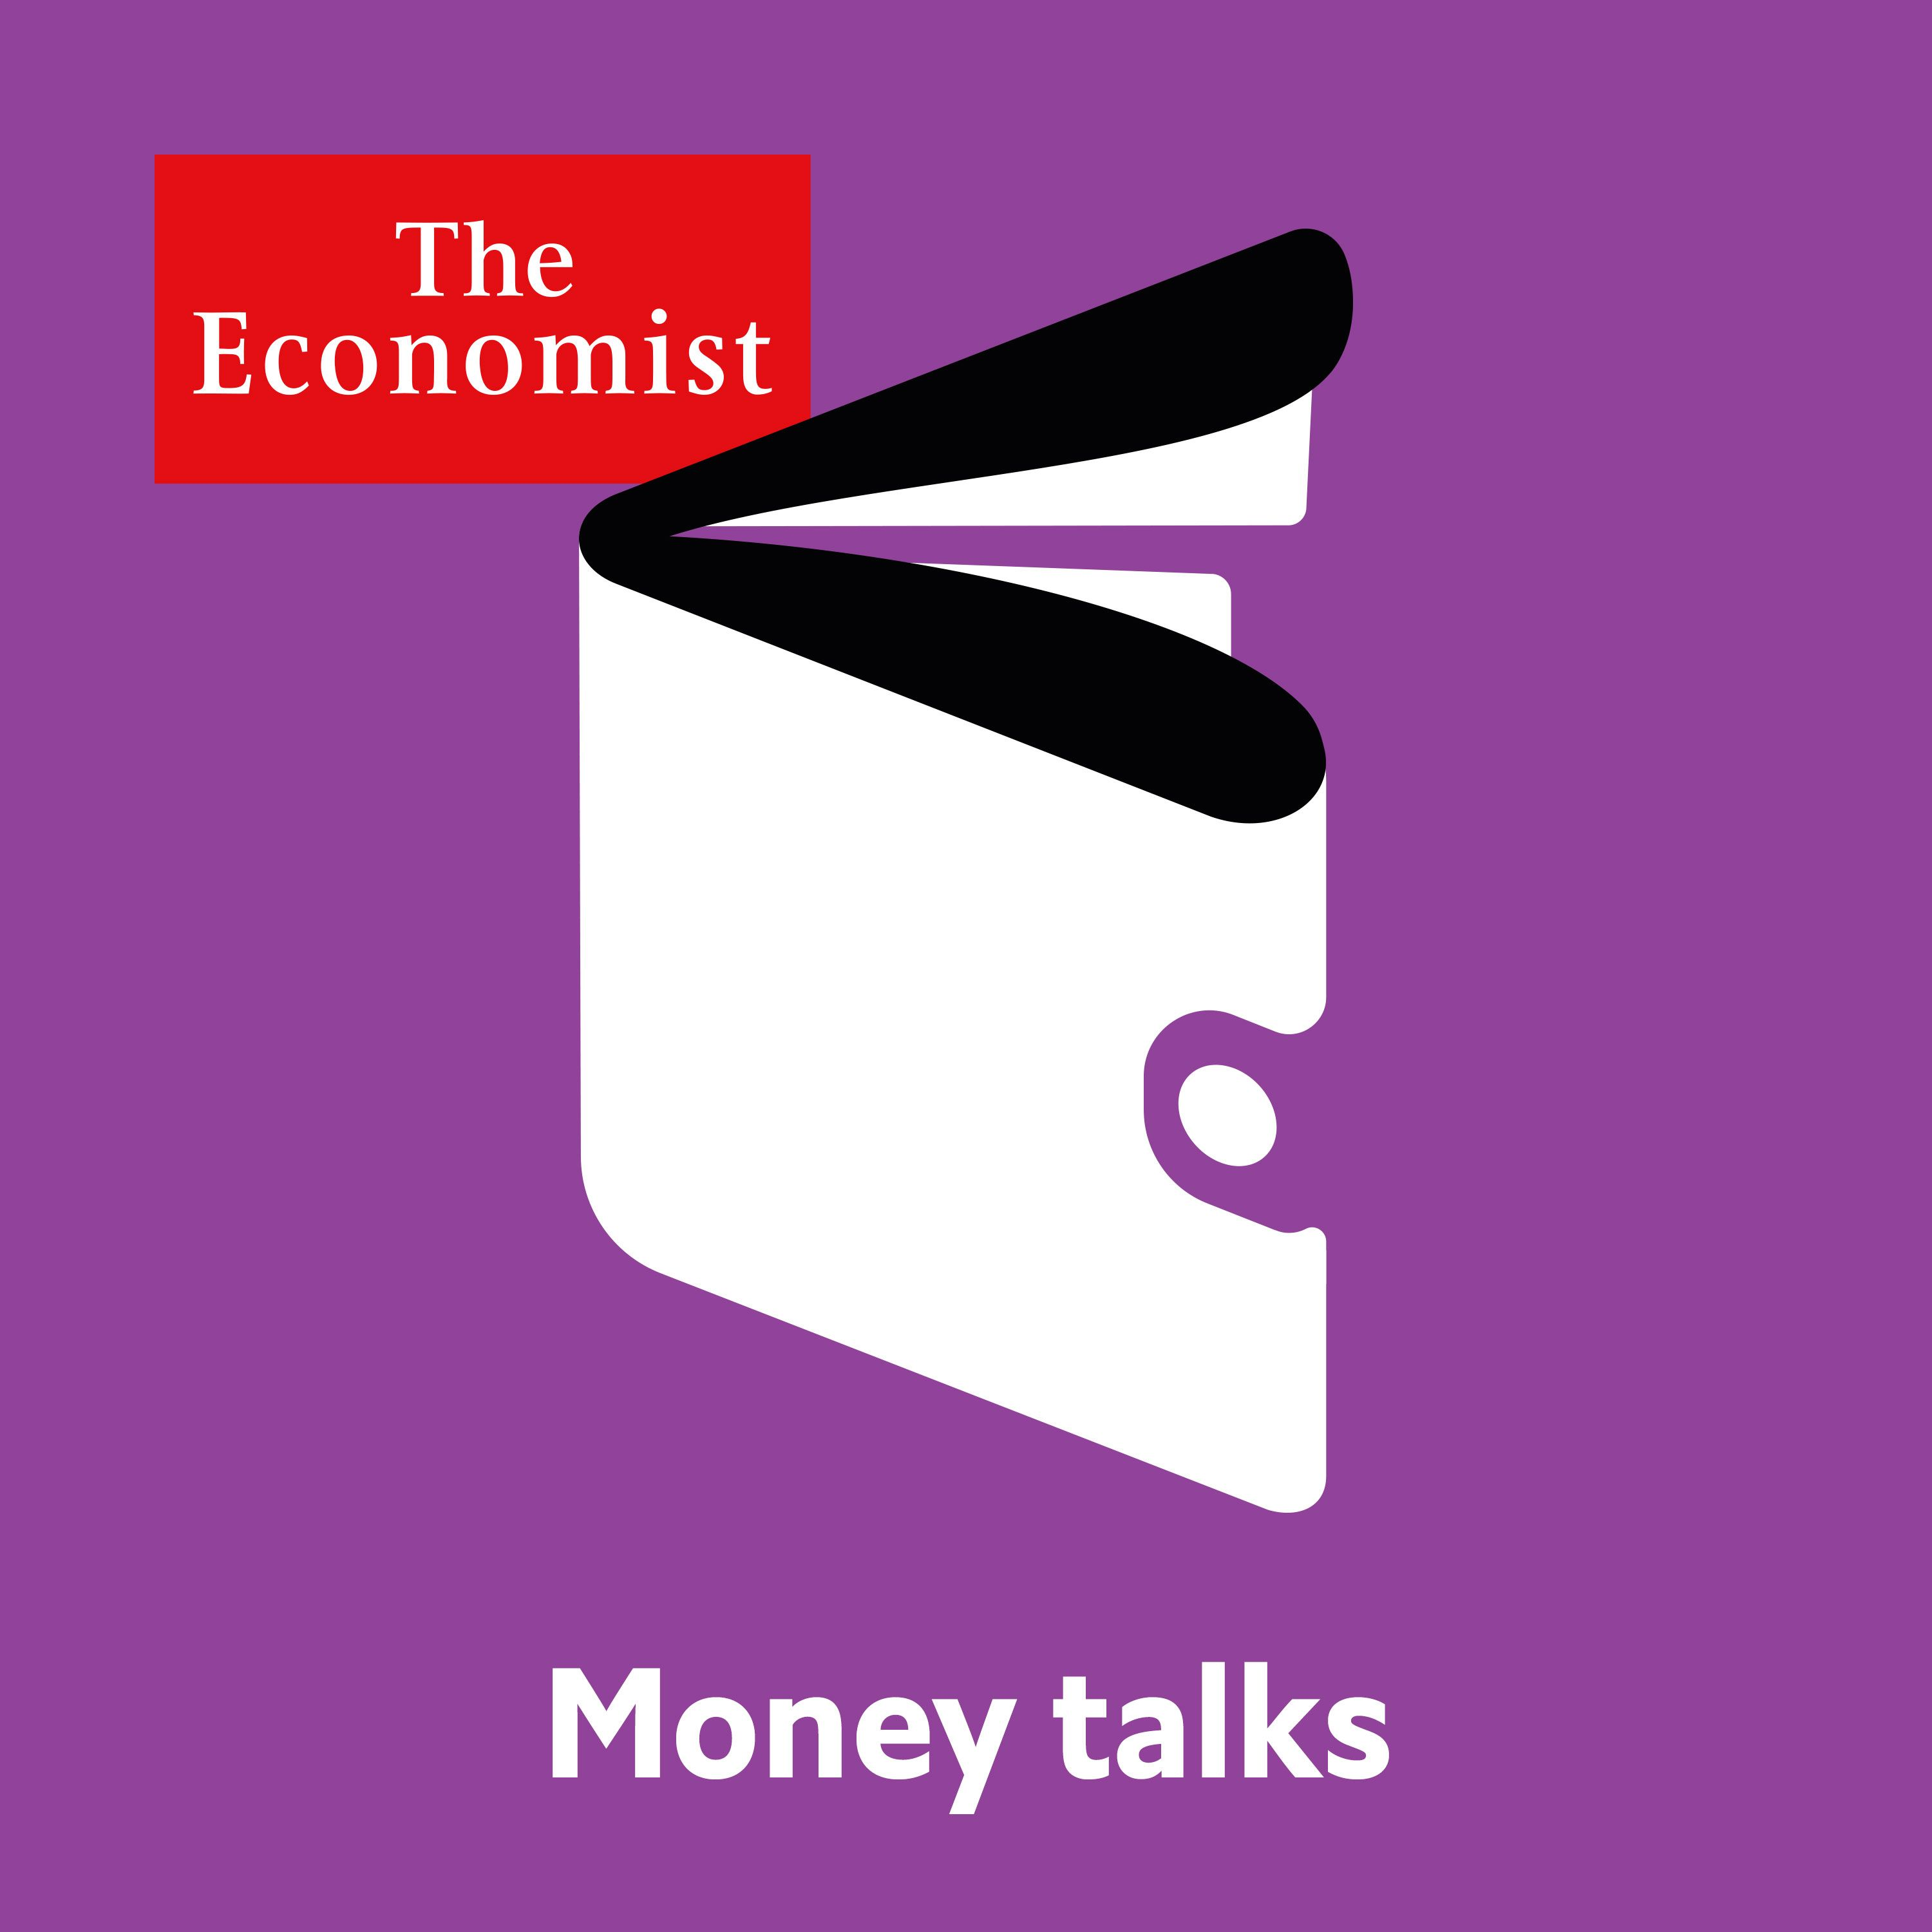 Money talks: From bad to wurst